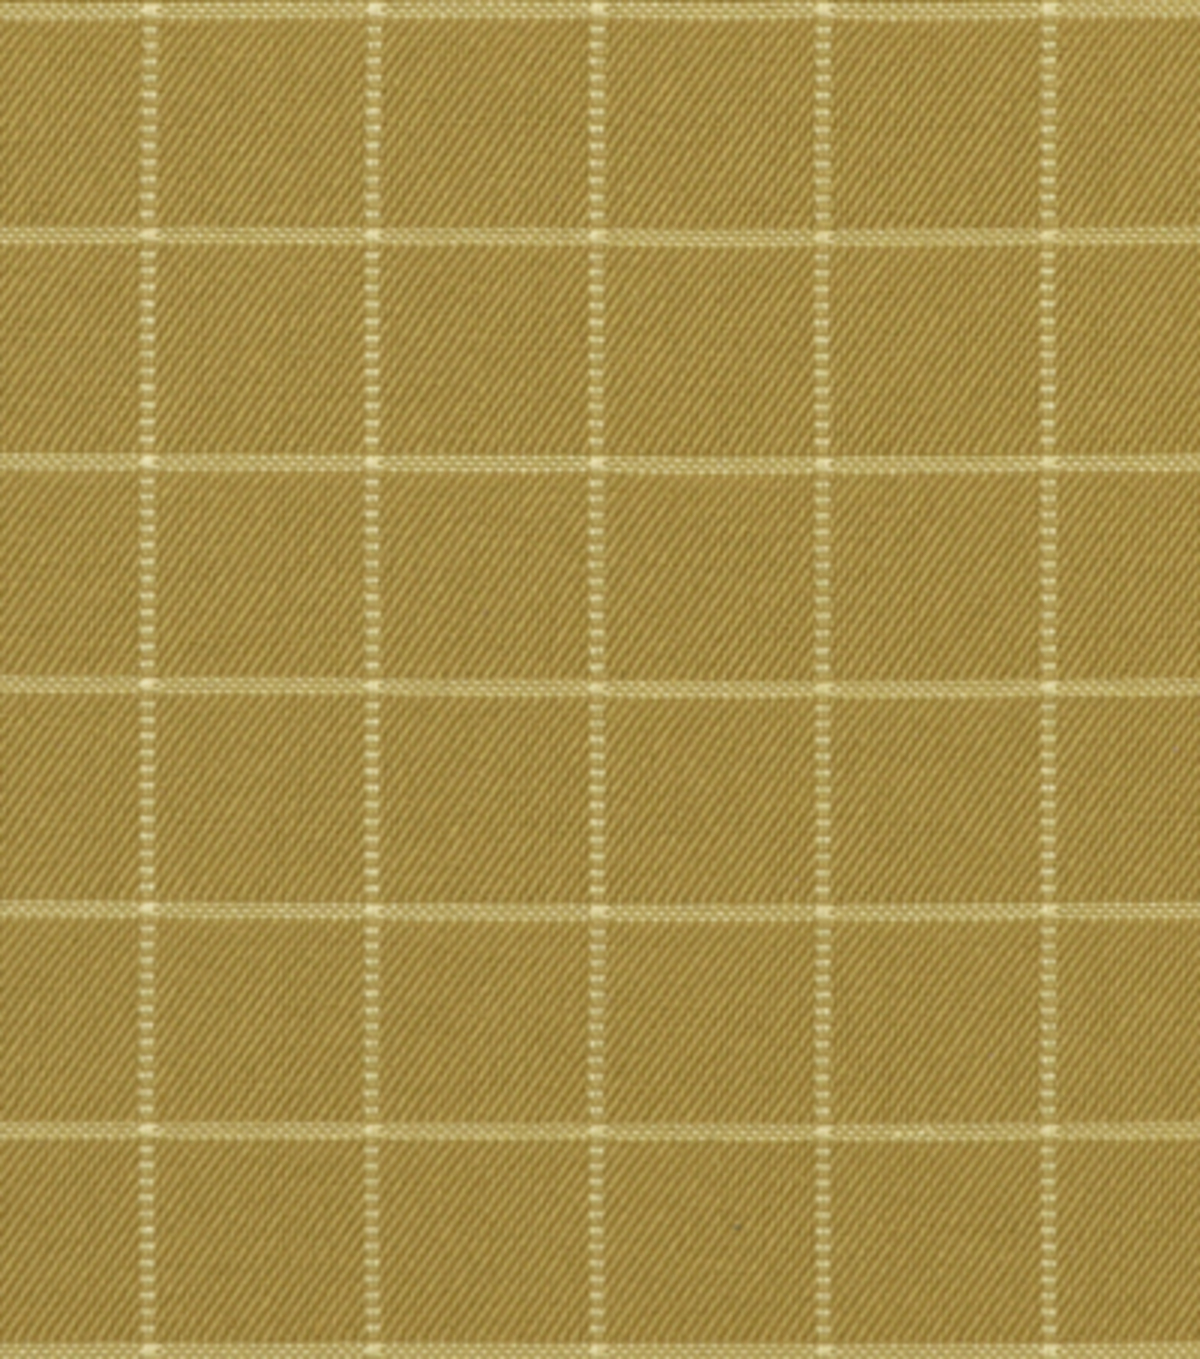 Home Decor 8\u0022x8\u0022 Fabric Swatch-Covington Ansible 660 Hemp